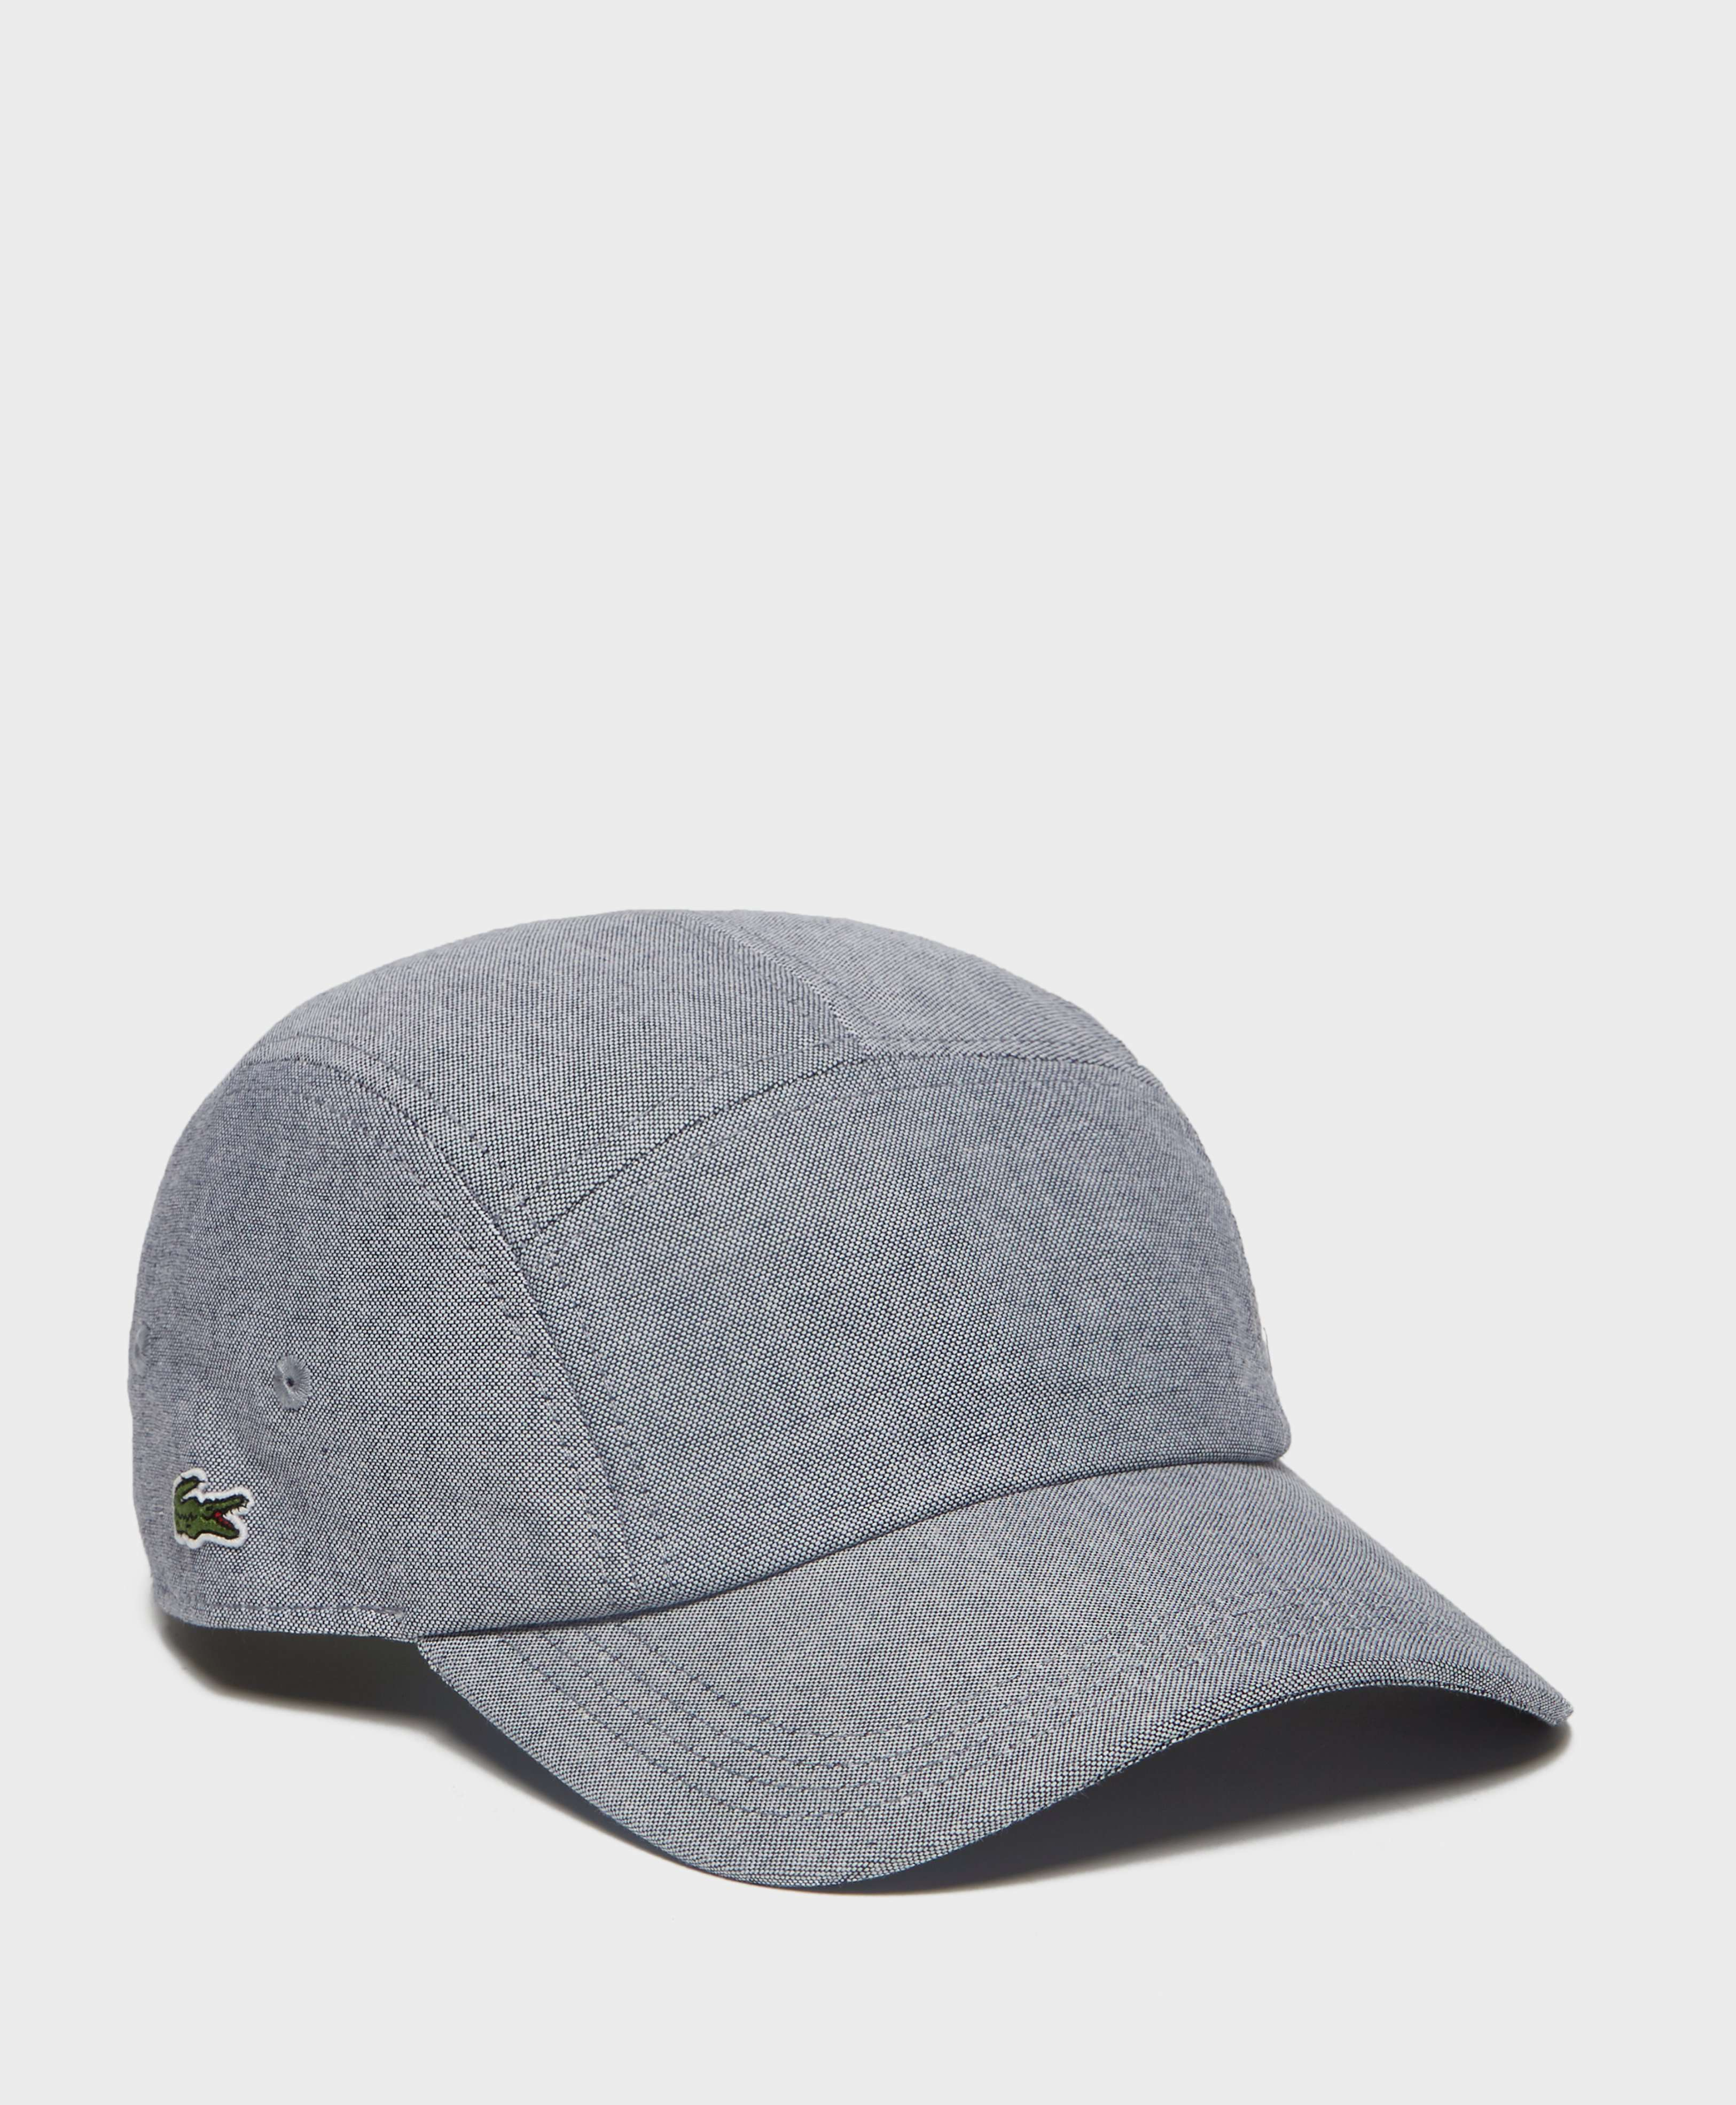 Lacoste 5 Panel Cap  9a5dad744eb